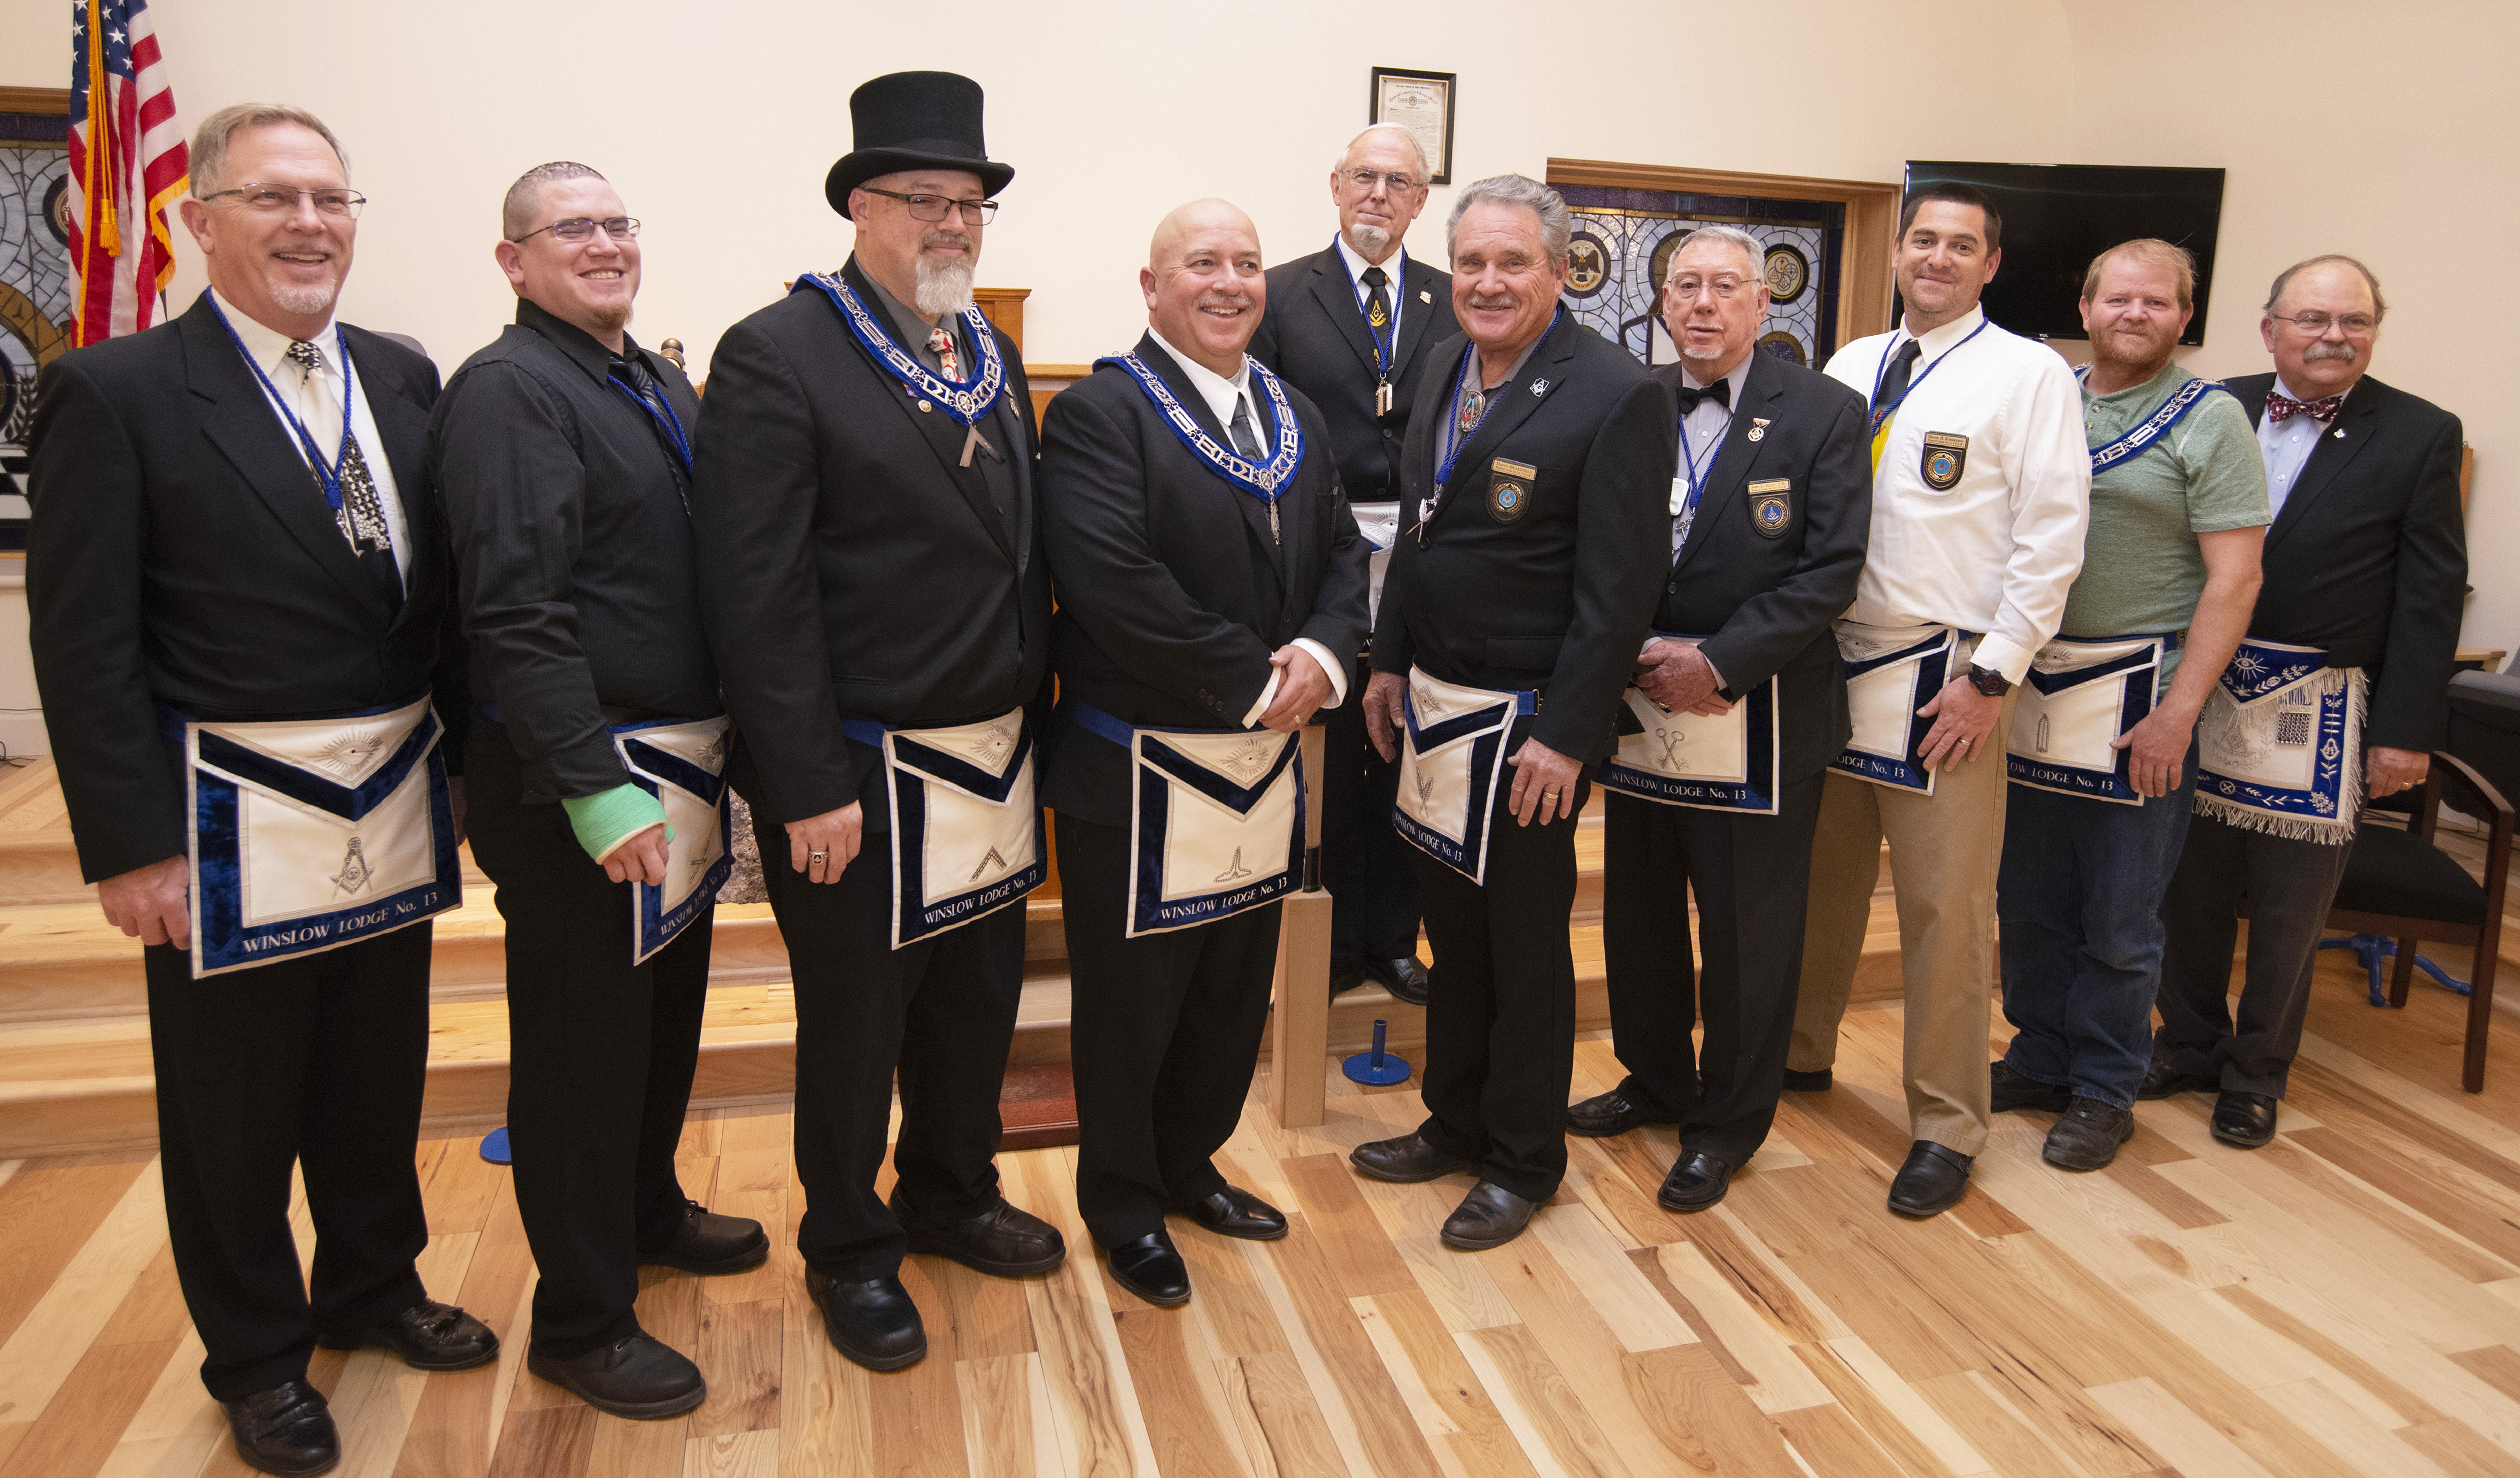 The Masonic Observer: Out With The Old, In With The New At Winslow Masonic Lodge